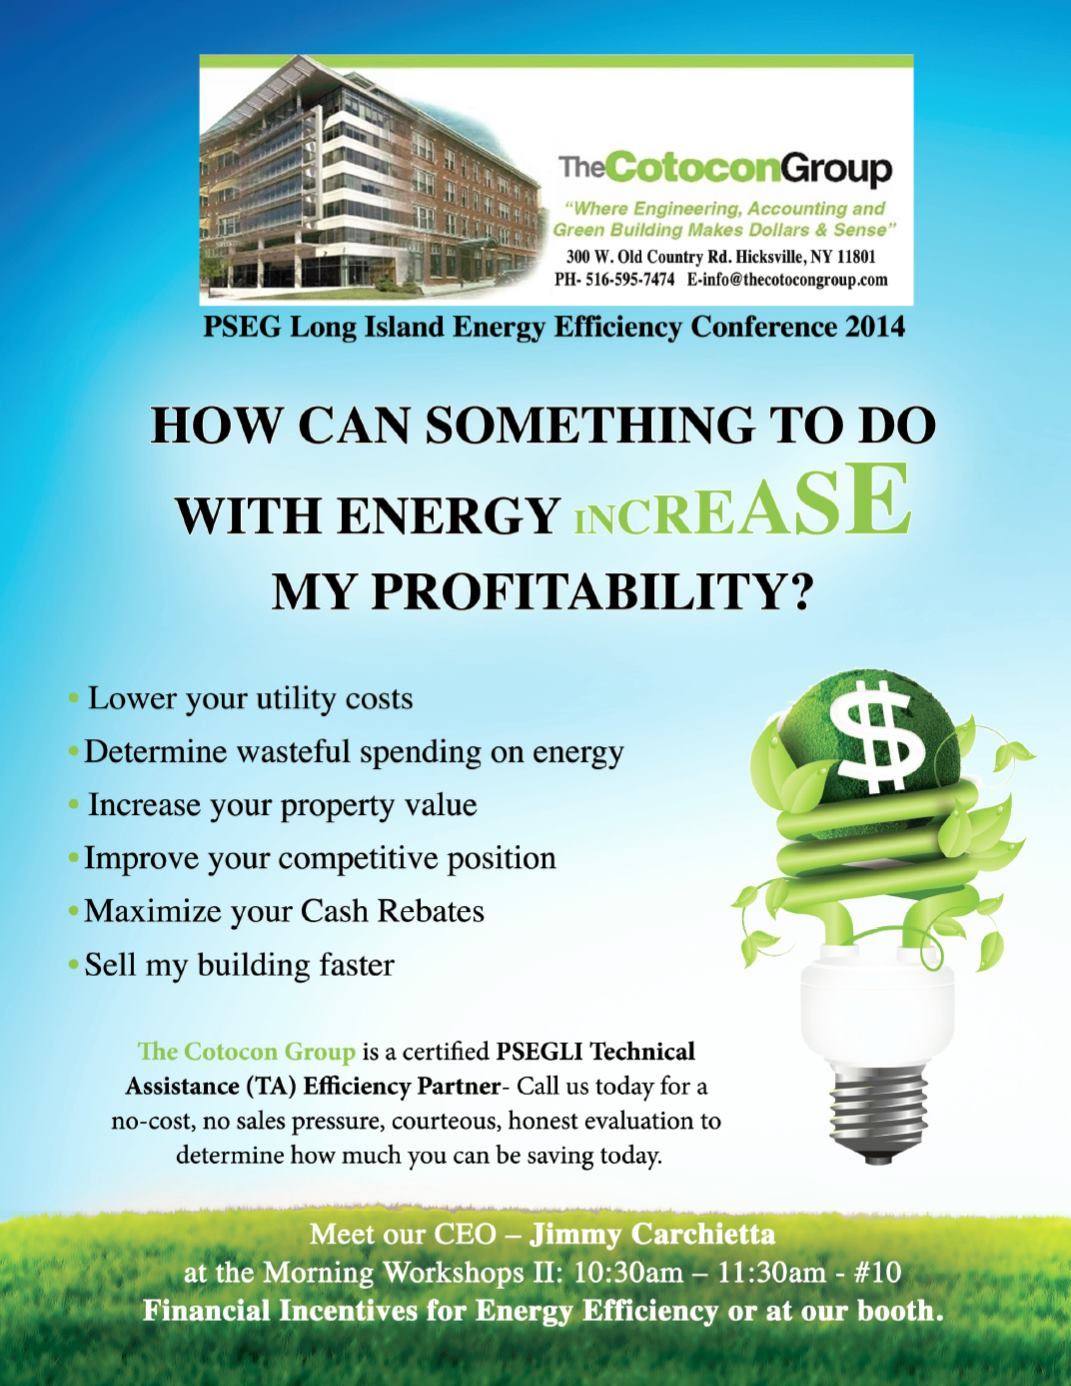 PSEG Energy Efficiency Conference Program Book